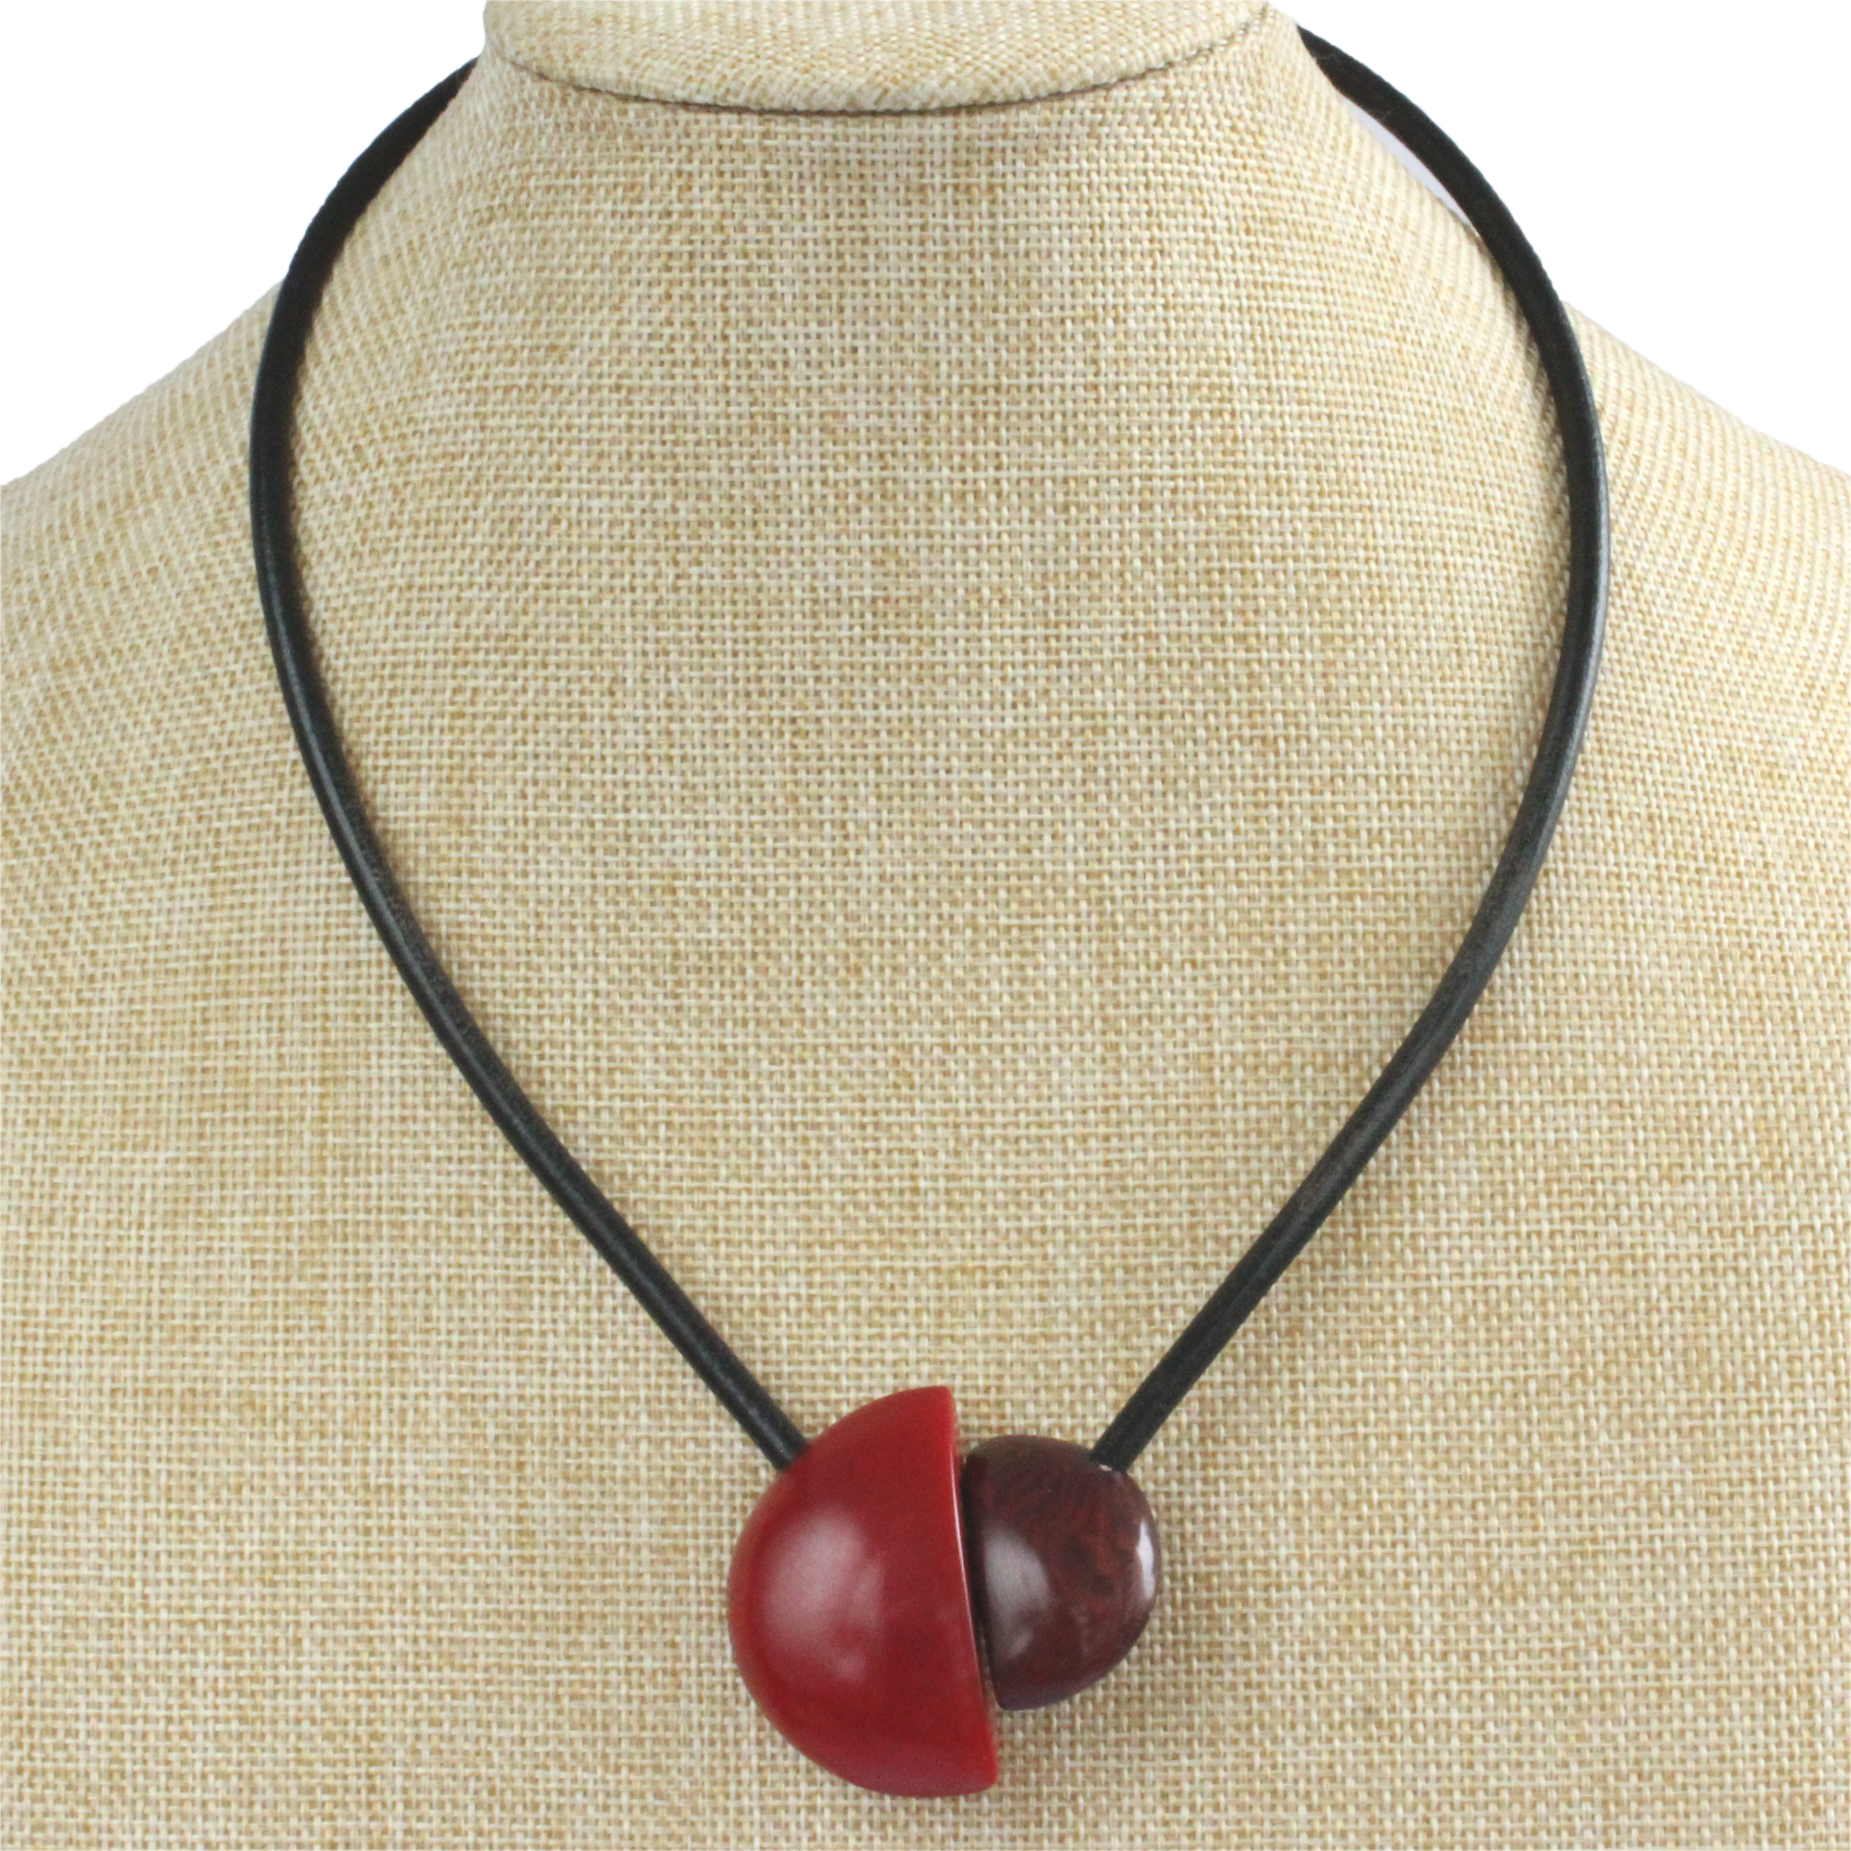 Handmade necklace, tagua nut, red maroon, stand, magnetic